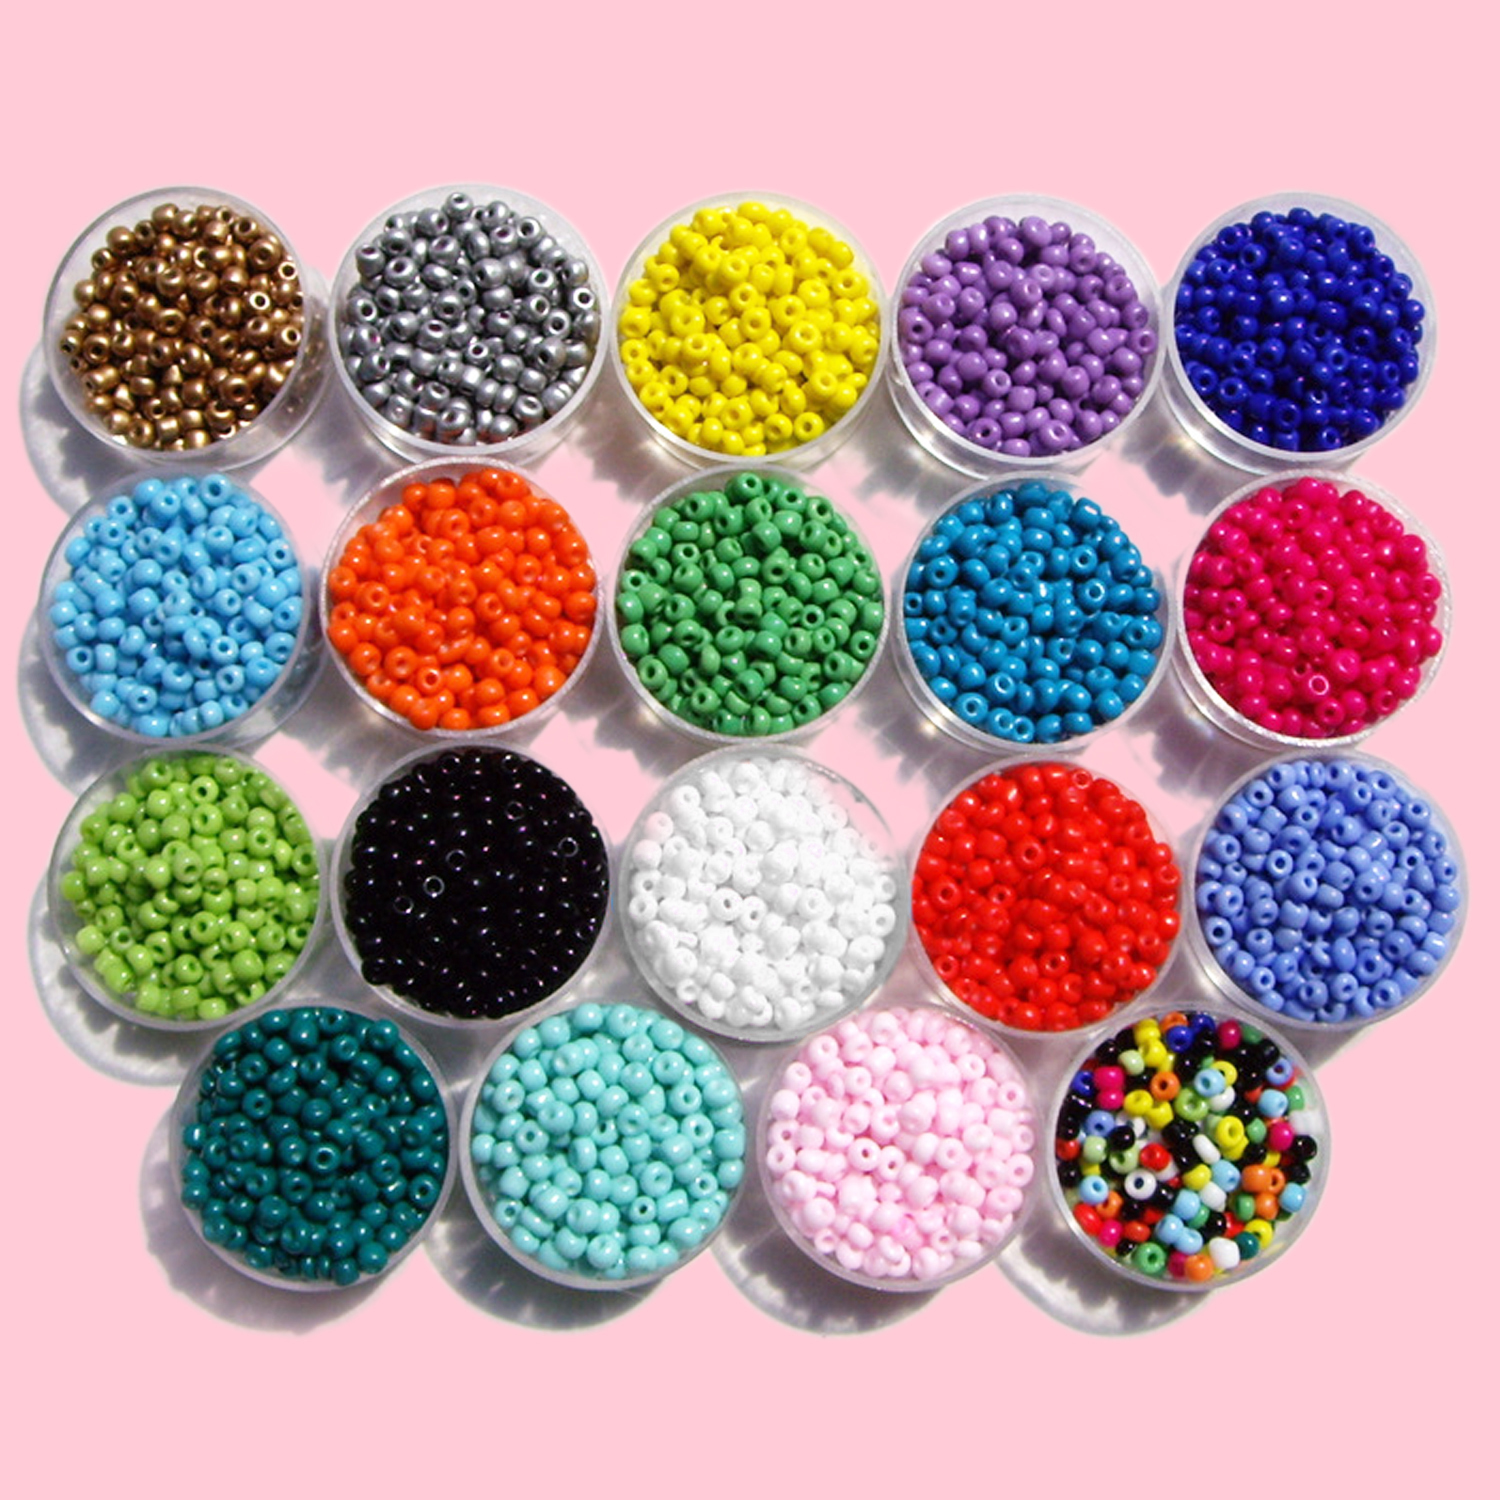 Kids Girls Candy Color 3mm Mini Acrylic Beads DIY Stringing Threading Weaving Bead Bracelet Necklace Jewelry Making Beaded Toy